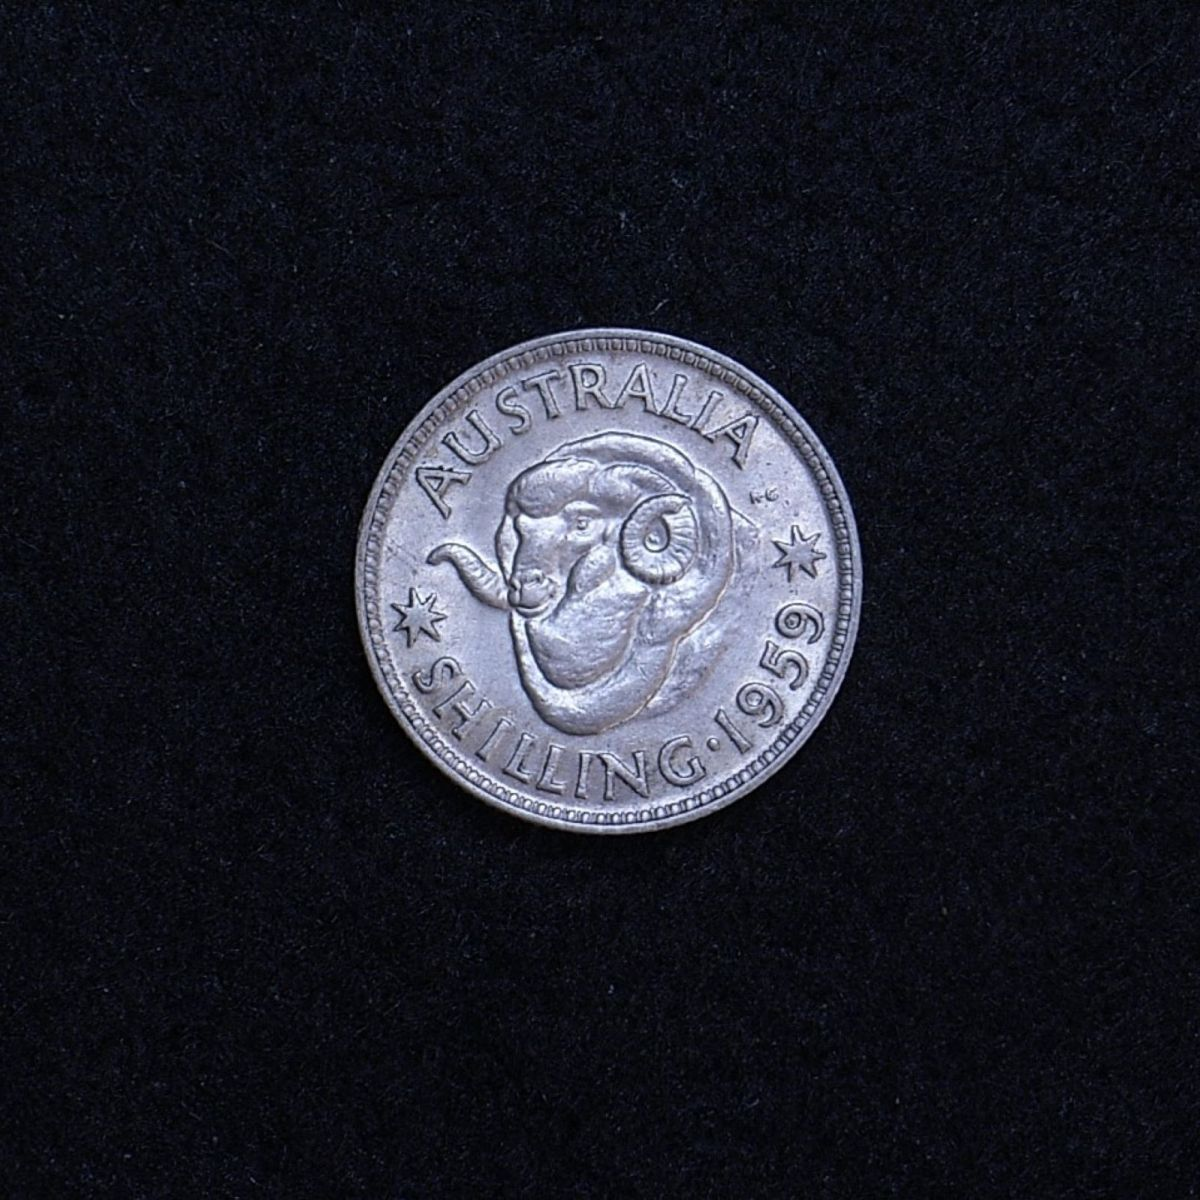 Aus shilling 1959 reverse showing overall appearance